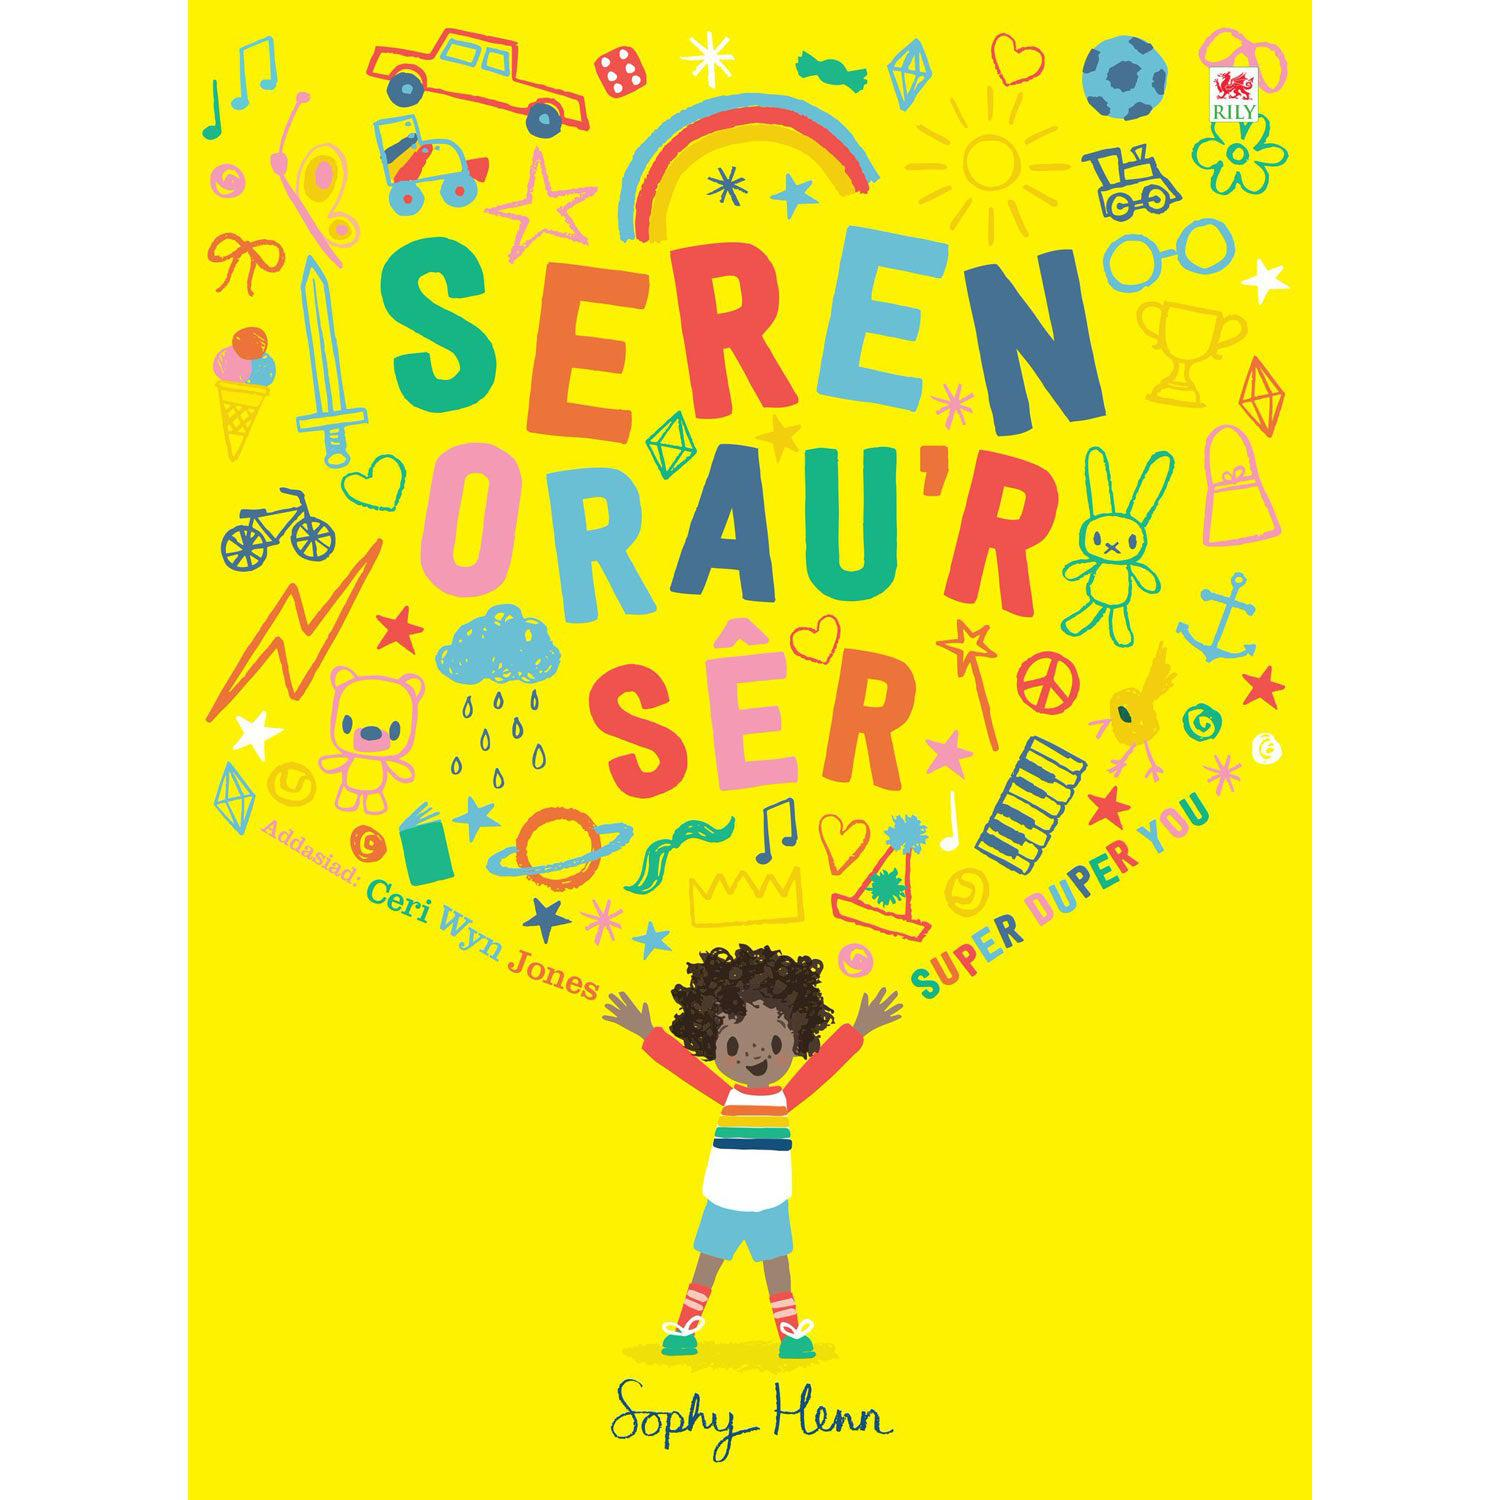 Seren Orau'r Sêr / Super Duper You - Sophy Henn